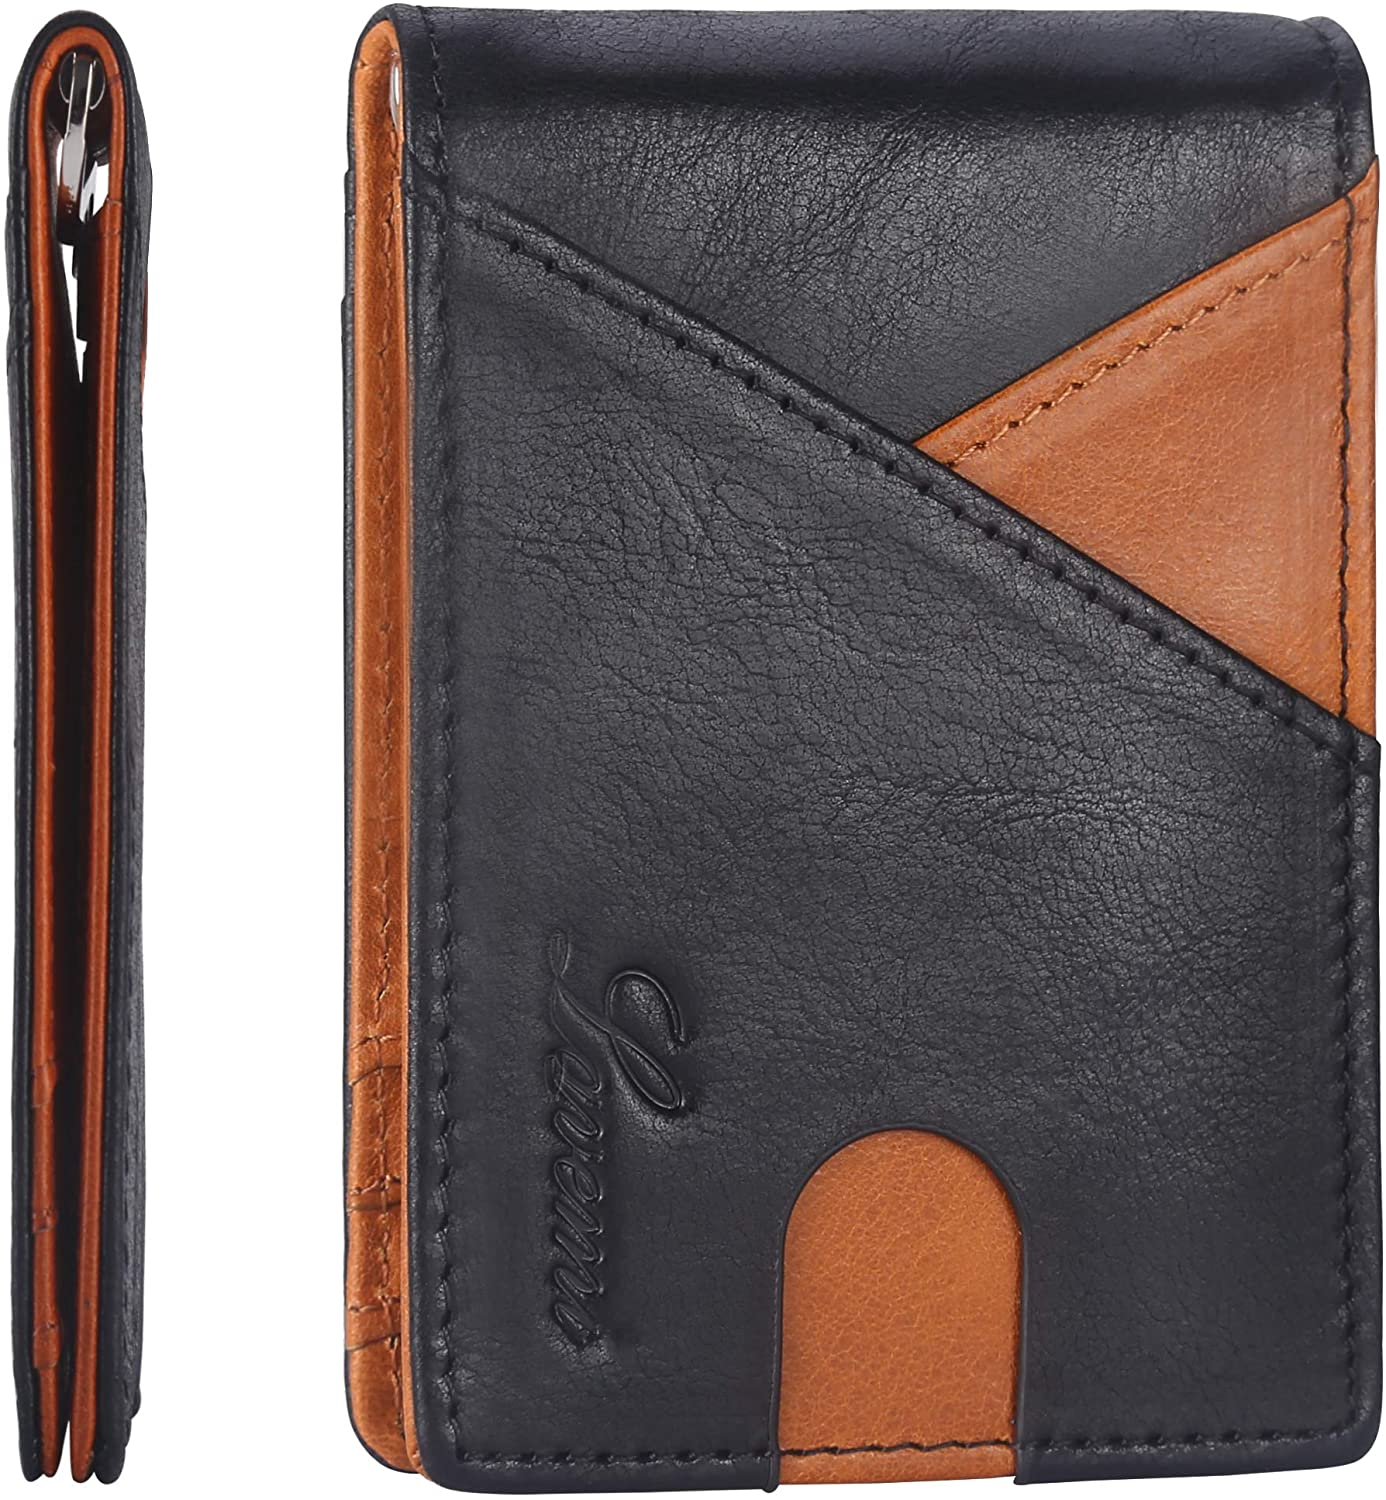 Lavemi Money Clip Wallet for Men Waxed Leather Slim Front Pocket RFID Blocking Minimalist Wallet